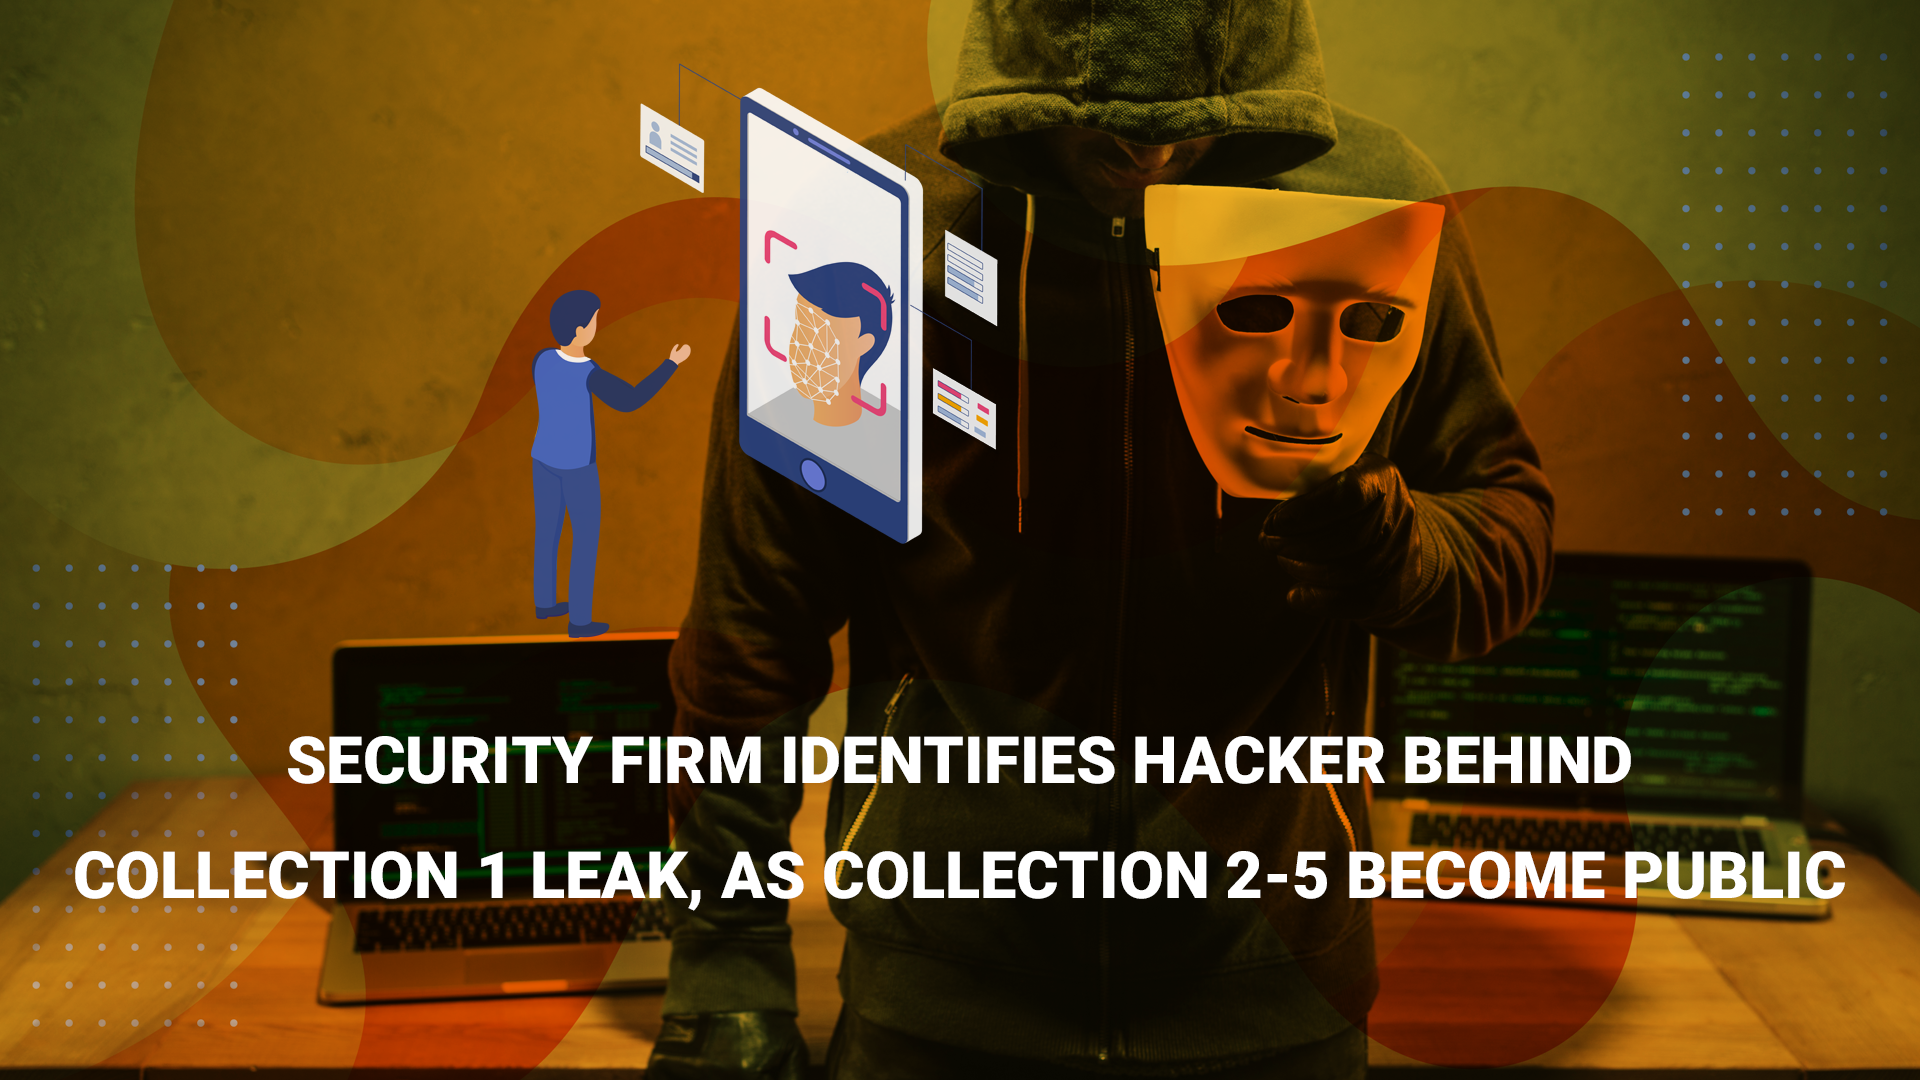 Security firm identifies hacker behind Collection 1 leak, as Collection 2-5 become public